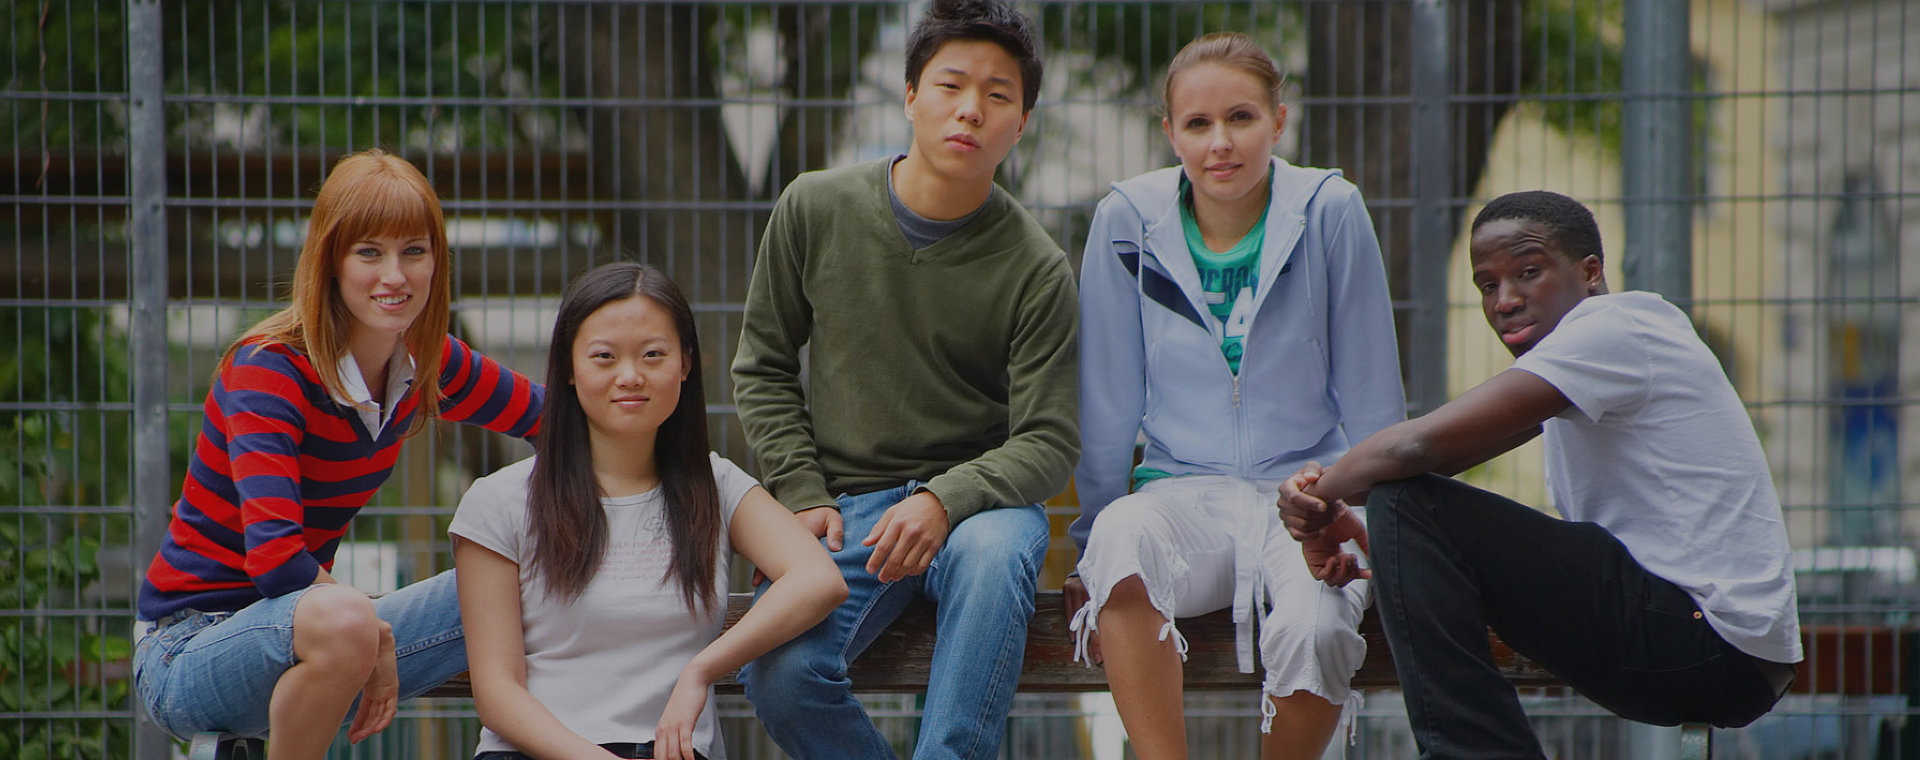 Group of Students with different races